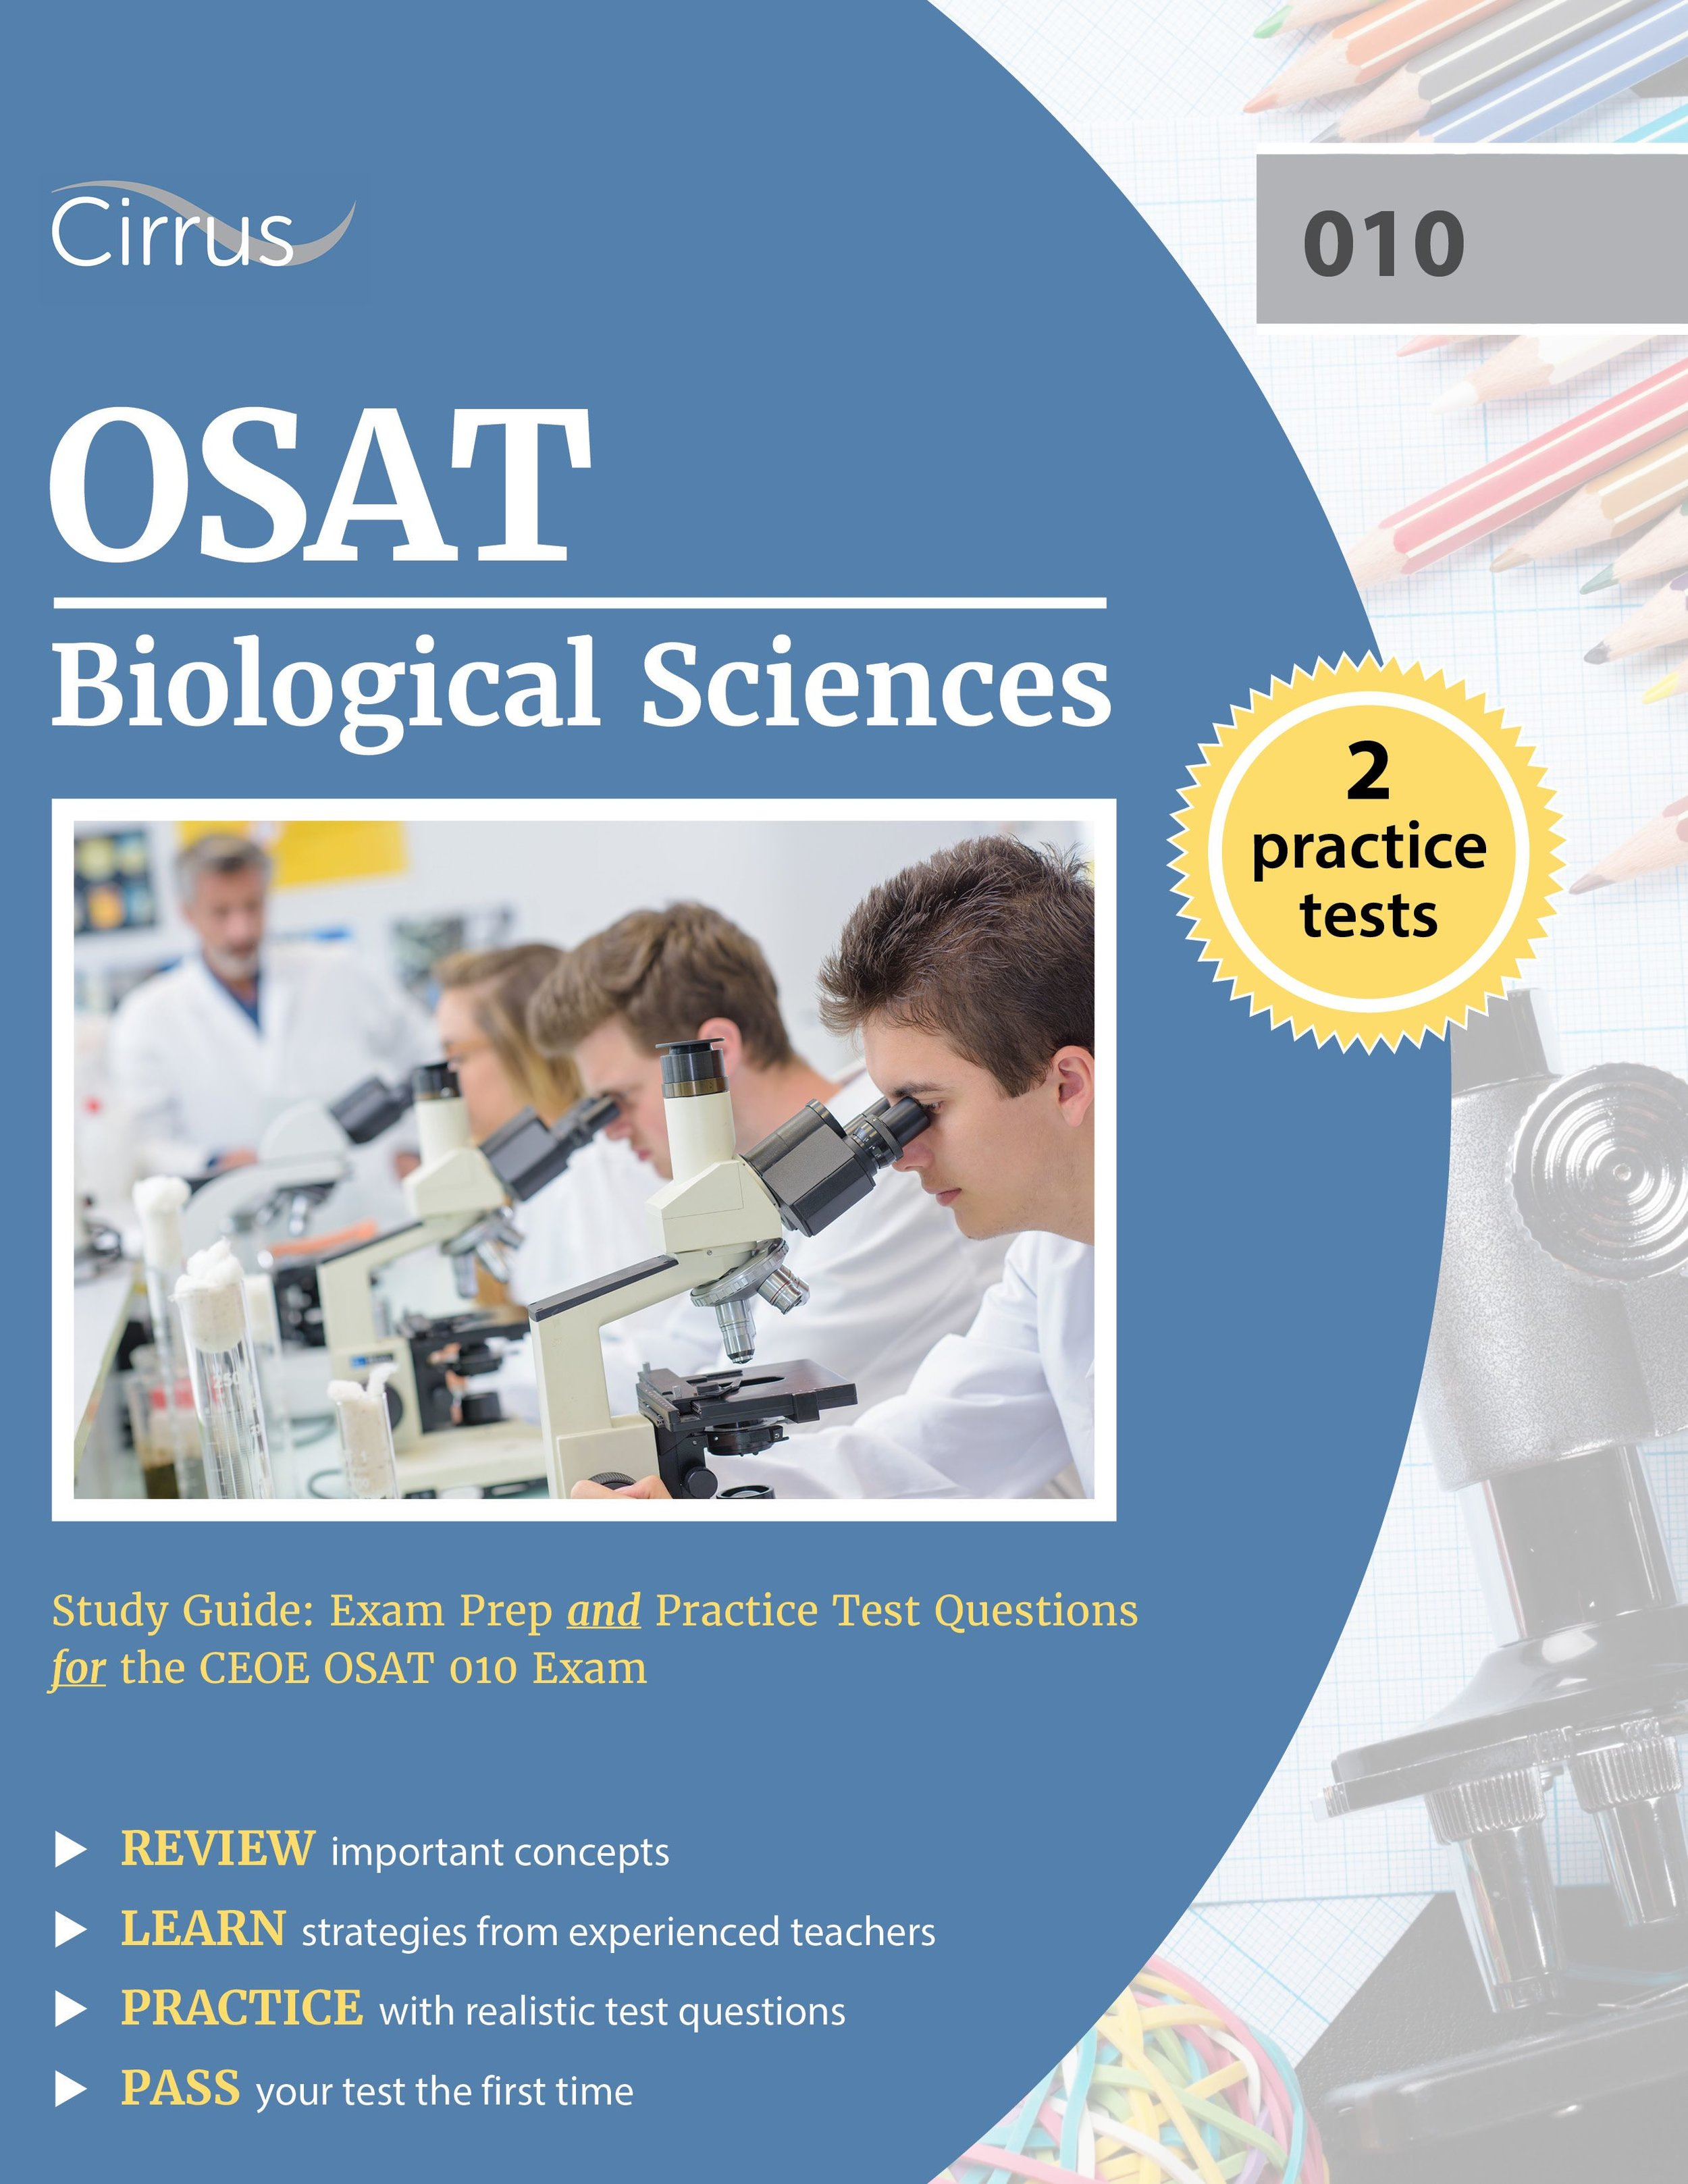 OSAT Biological Sciences (010) Study Guide